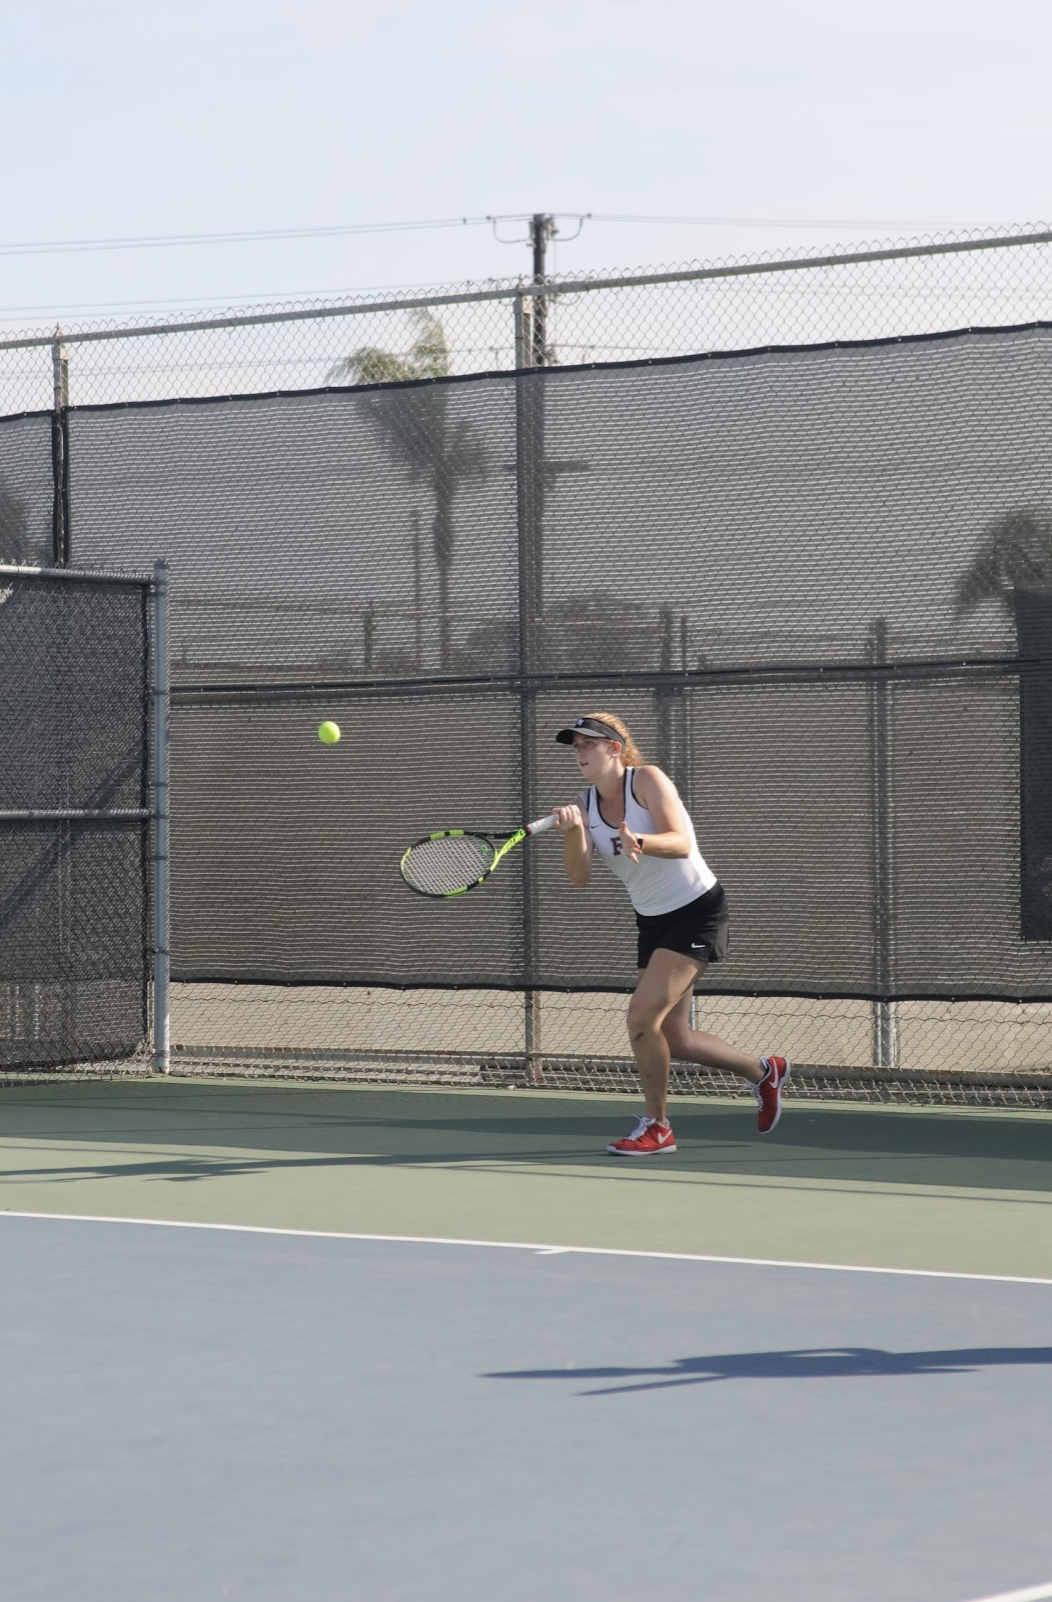 Alyssa MCLain '20 hits a ball across the net. Credit: Muriel Rowley / The Foothill Dragon Press